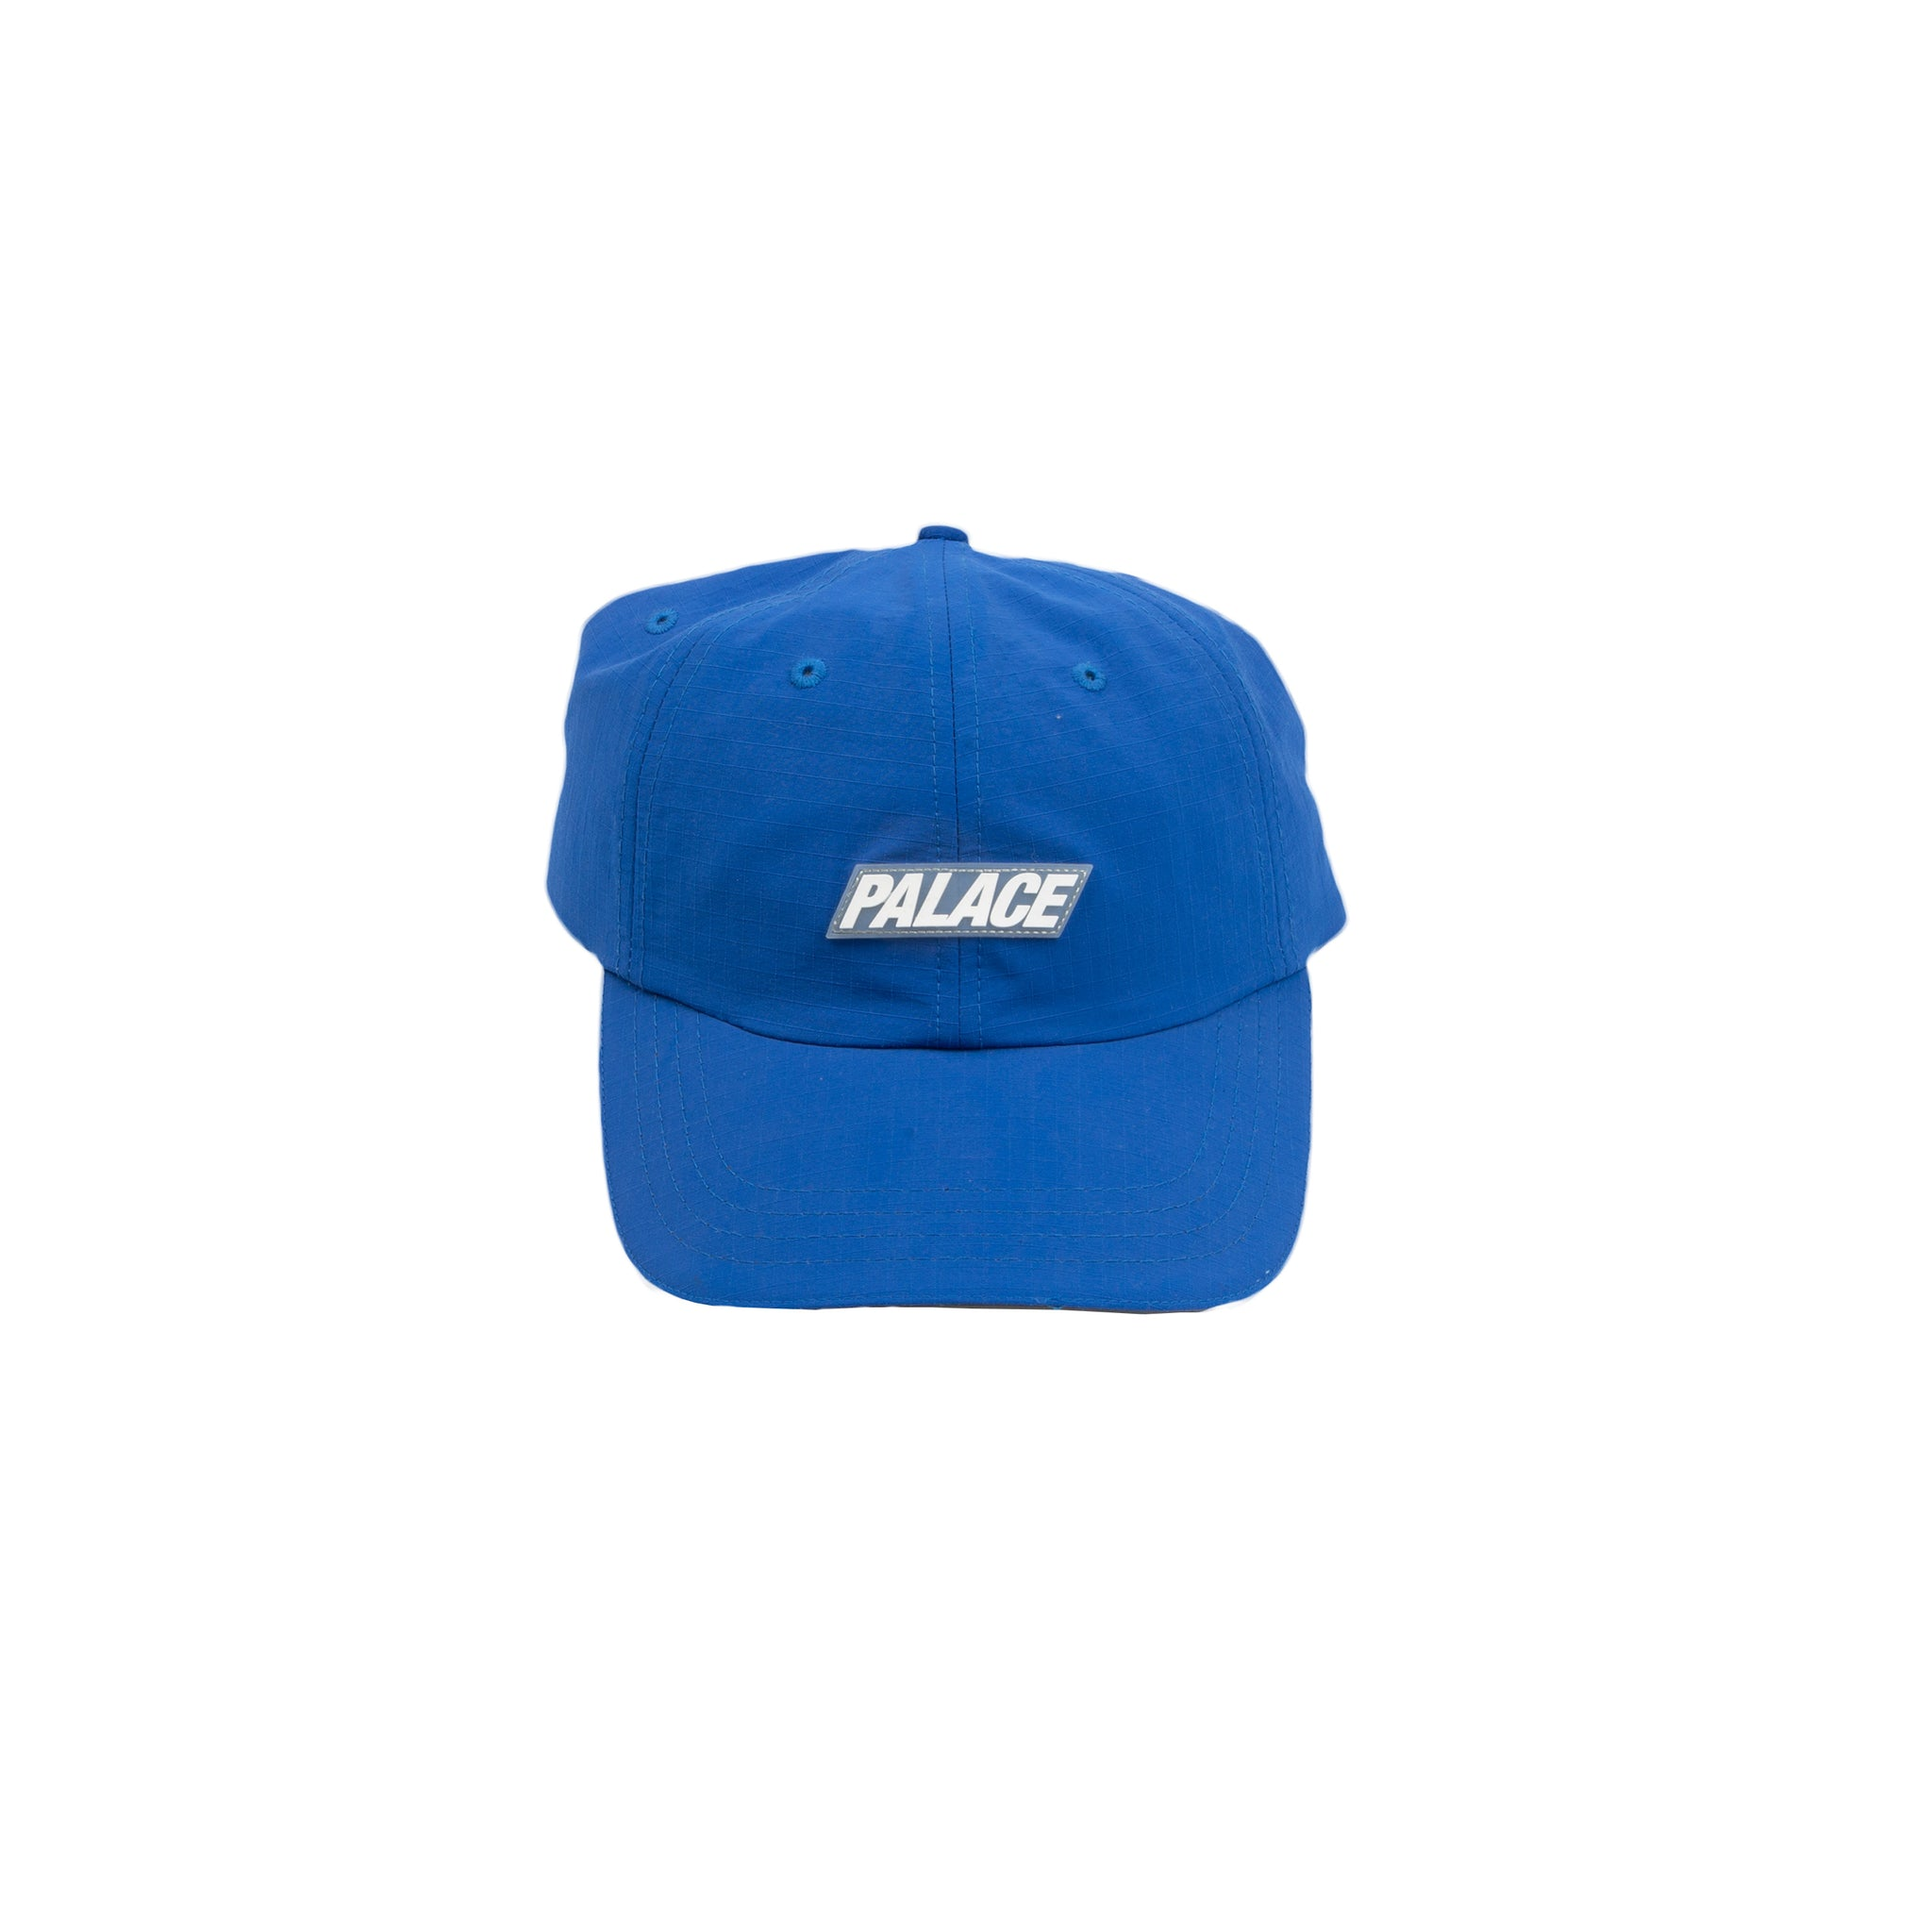 Palace Blue Hat